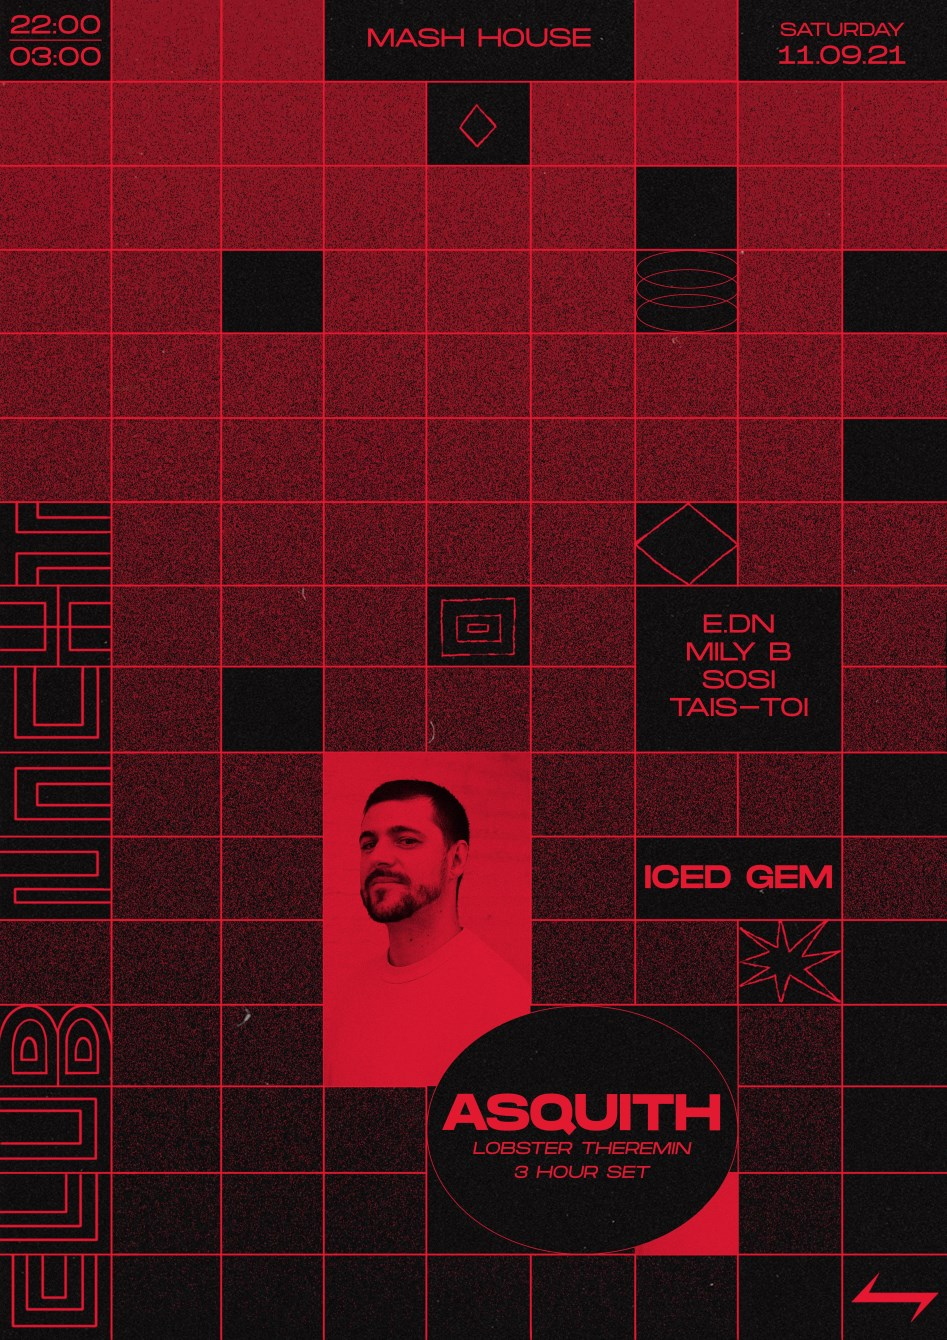 Asquith (Lobster Theremin) [3 Hour set] ⥊ Iced Gem (Miss World) ⥊ Club_nacht - Flyer front